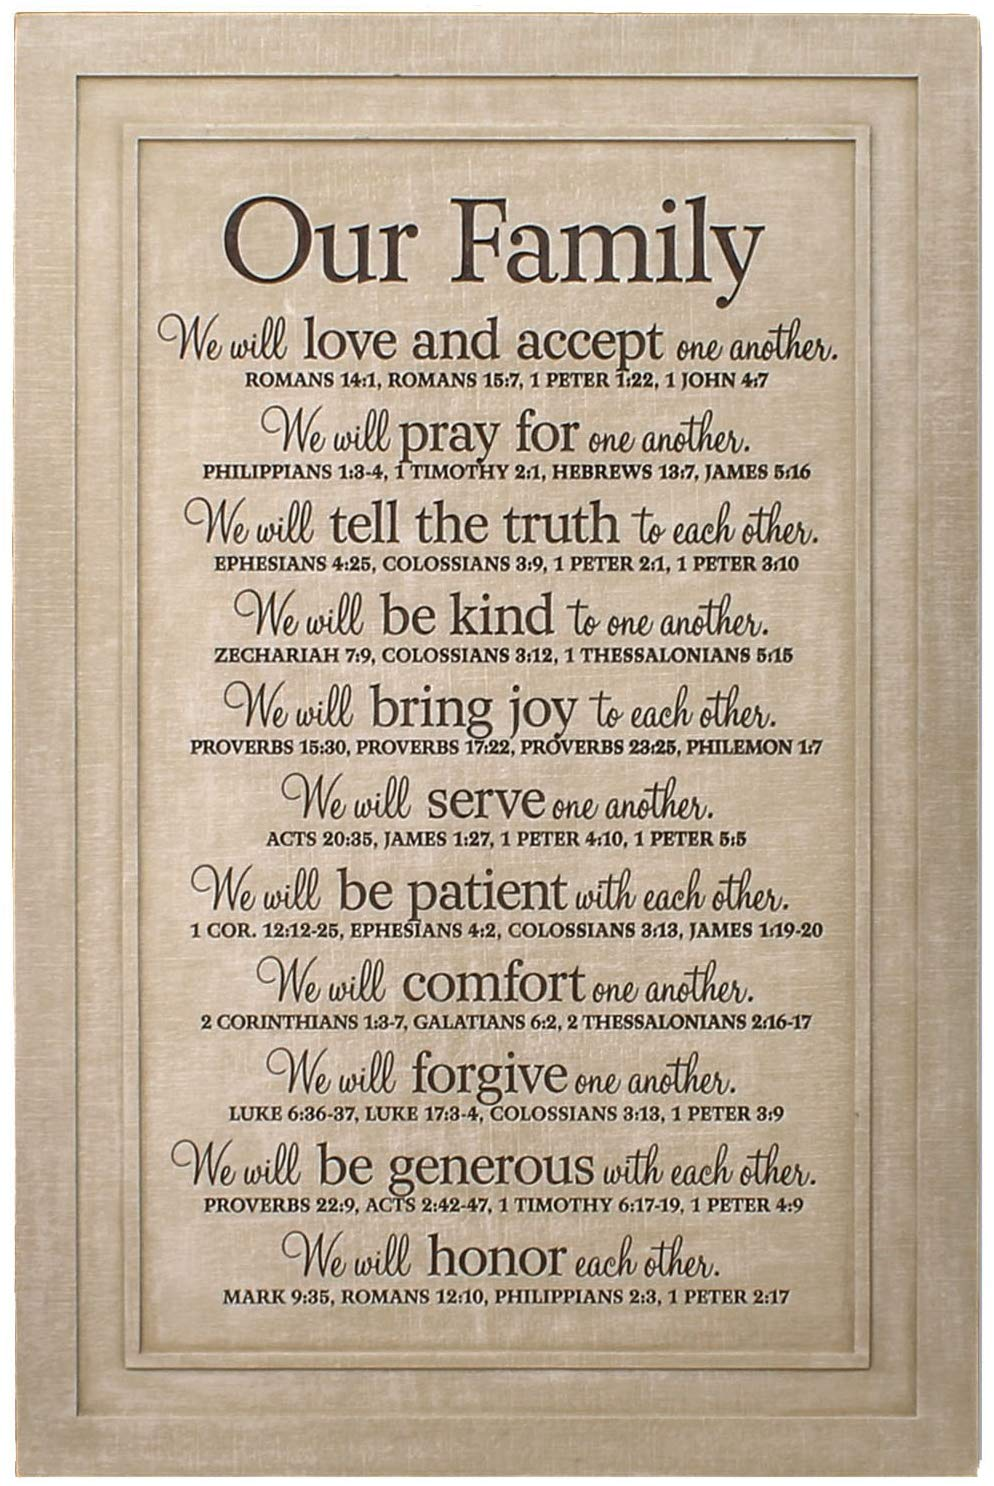 Lighthouse Christian Products Our Family Will Love One Another Textured Cream 11.25 x 16.75 Cast Stone Wall Plaque